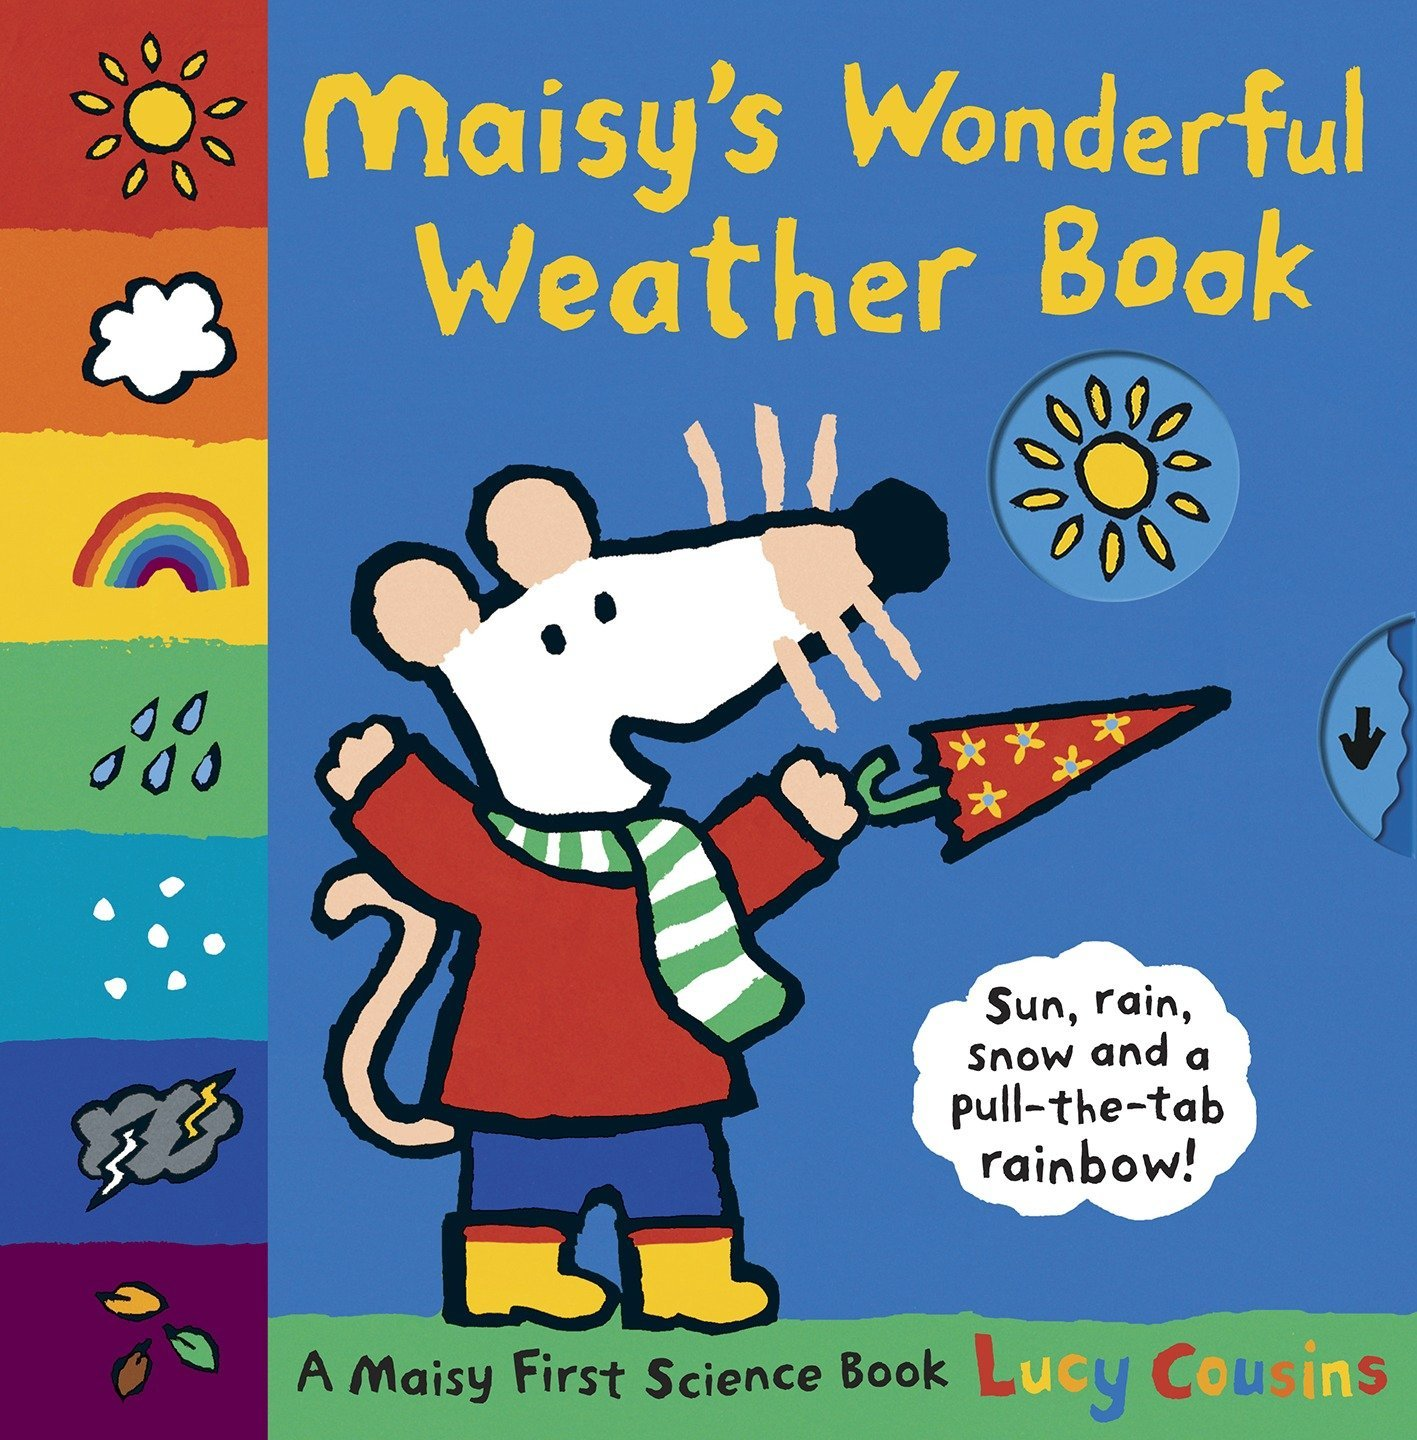 Image OfMaisy's Wonderful Weather Book